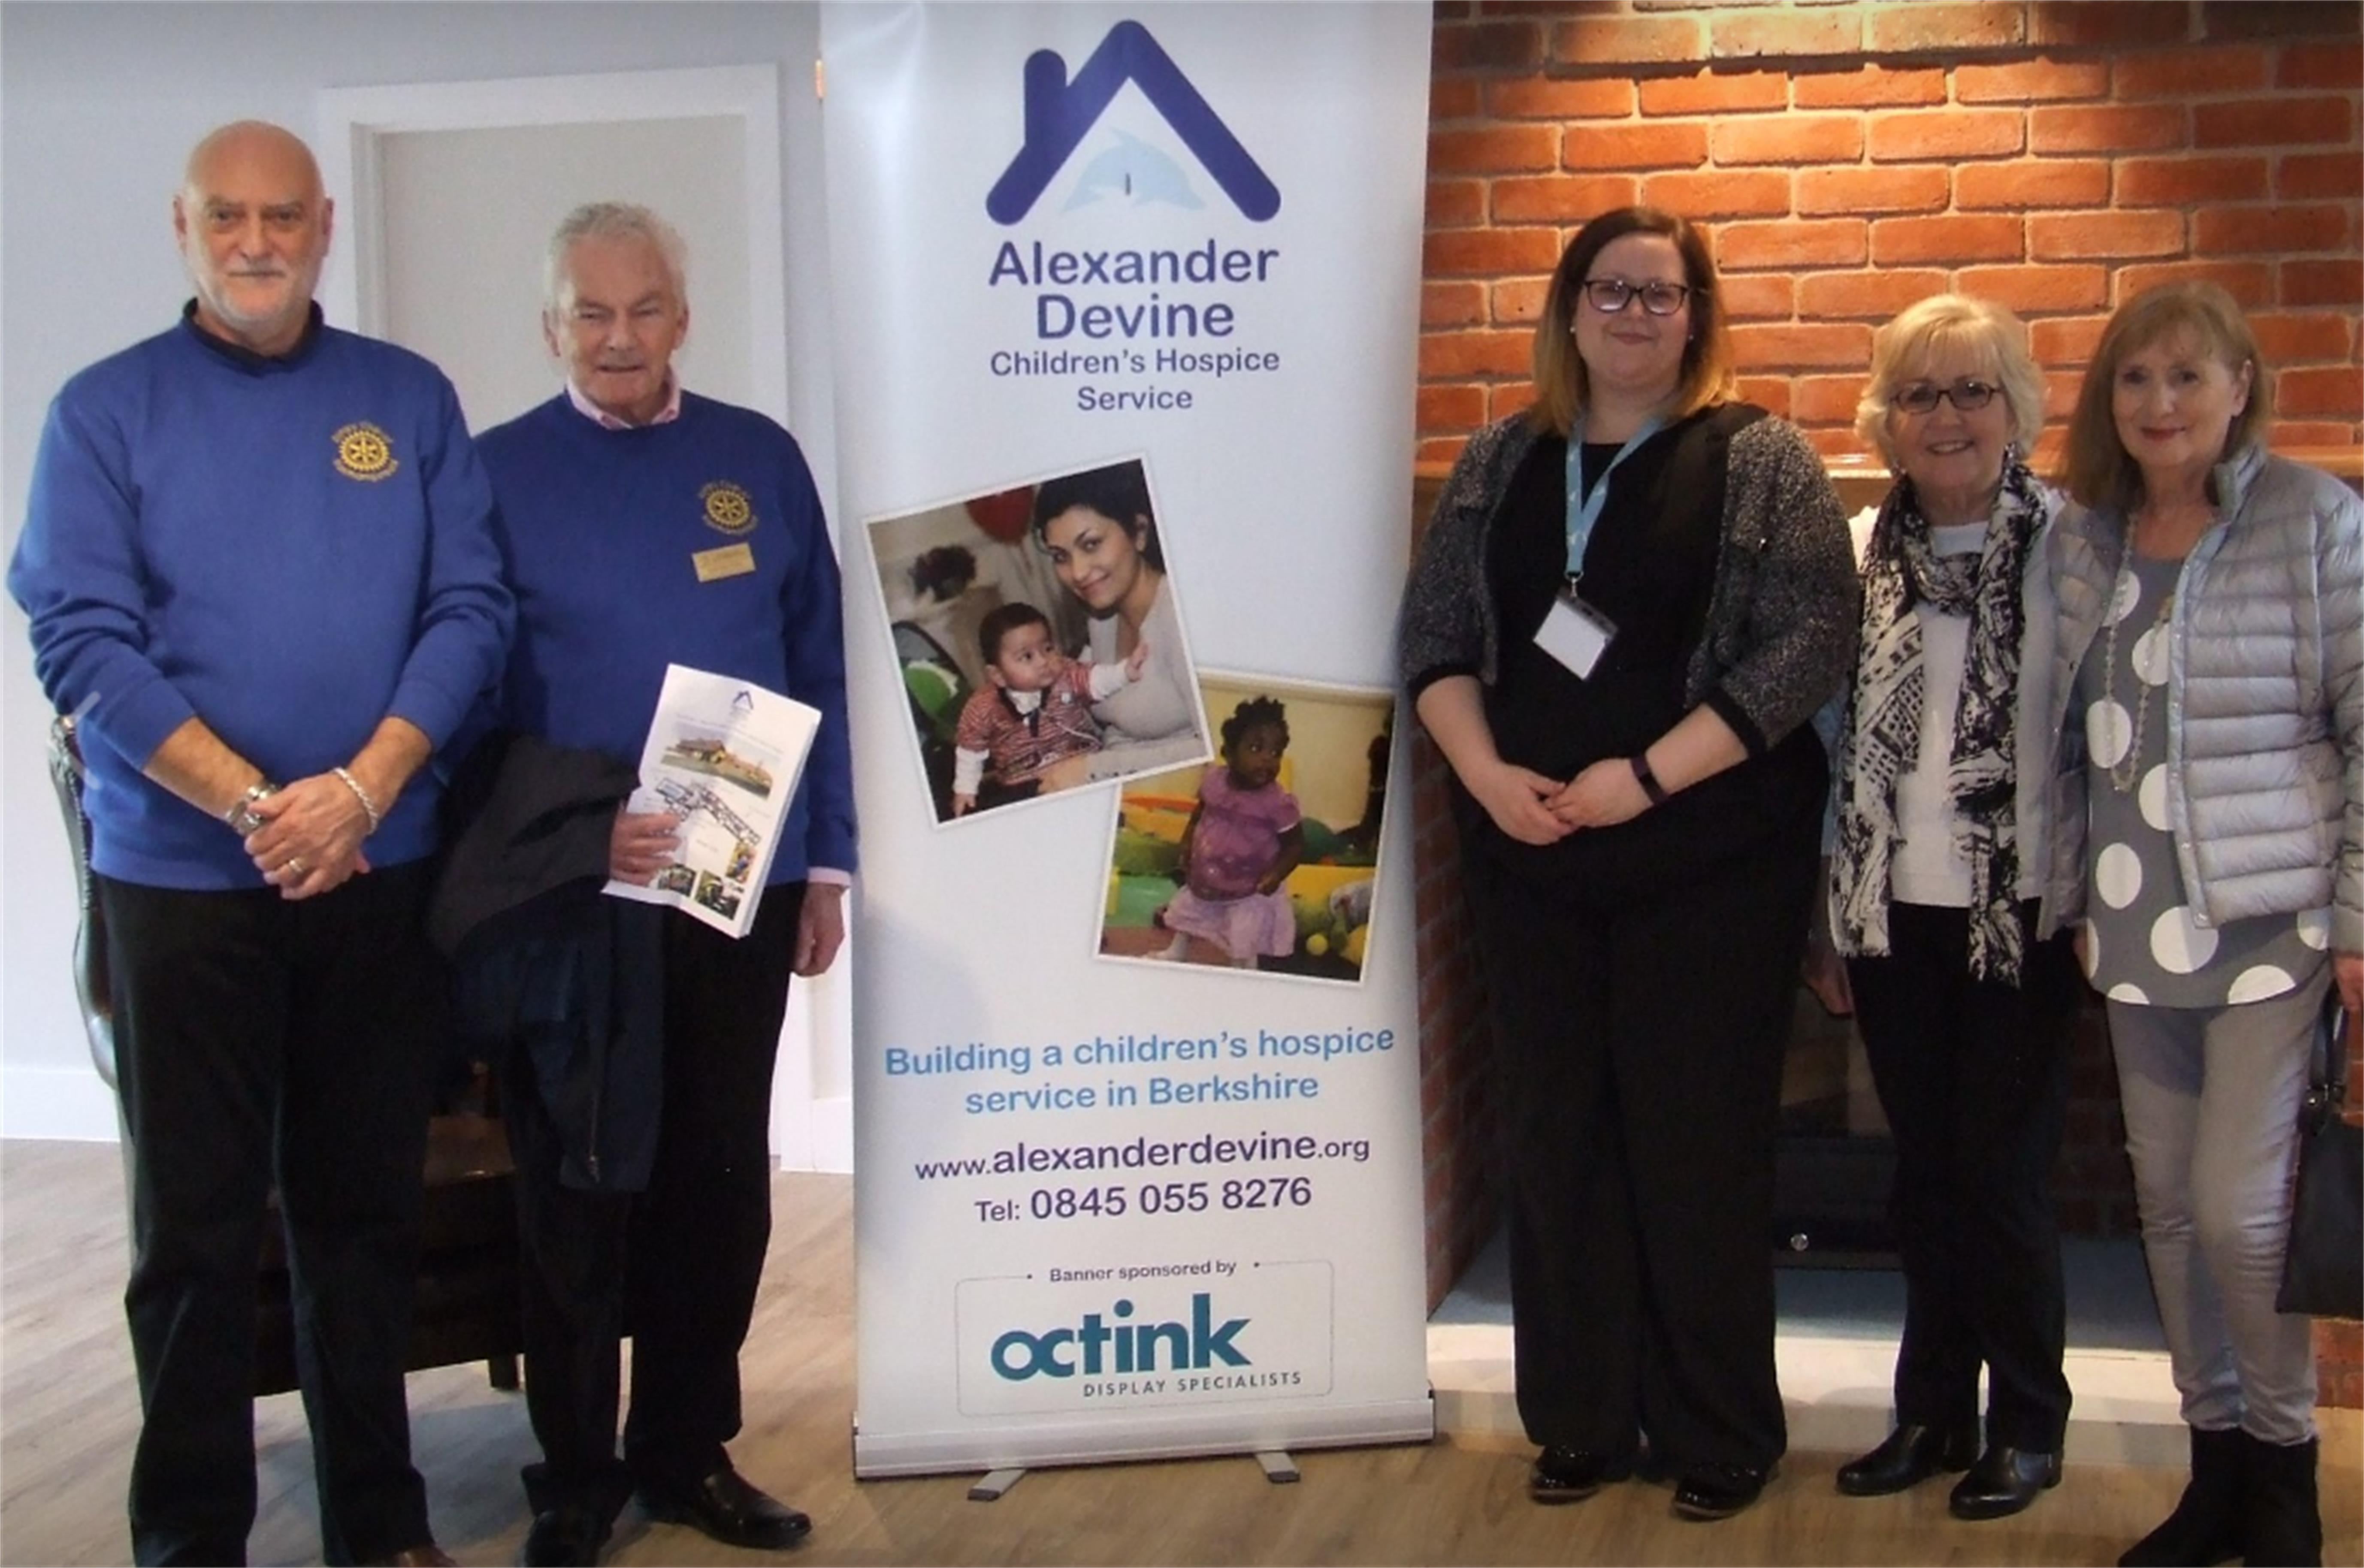 Local charities we support - Alexander Devine